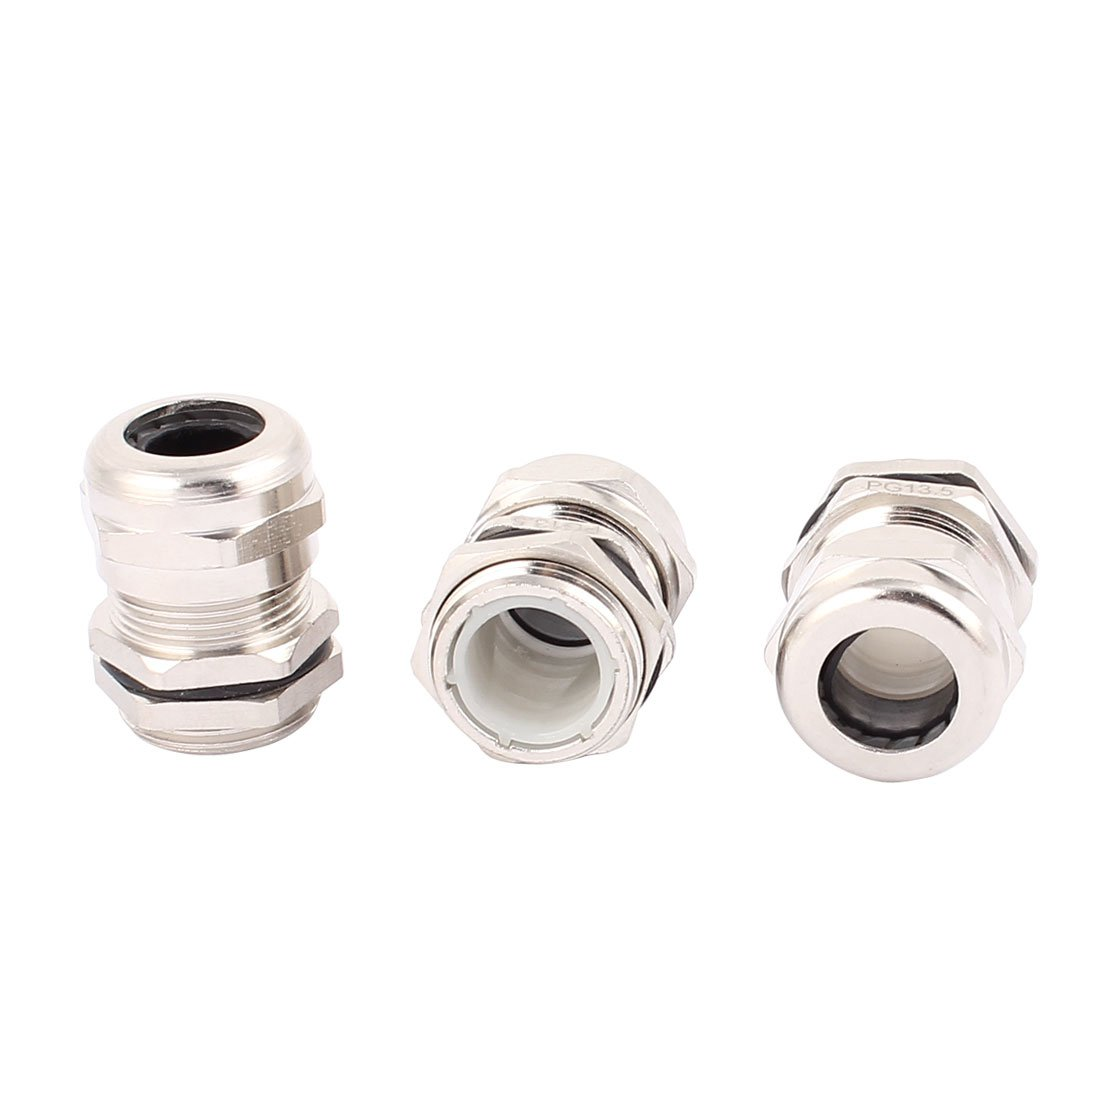 uxcell 3 Pcs PG13.5 Cable Gland Stainless Steel Waterproof Connector Fastener Locknut Stuffing for 6-12mm Dia Wire